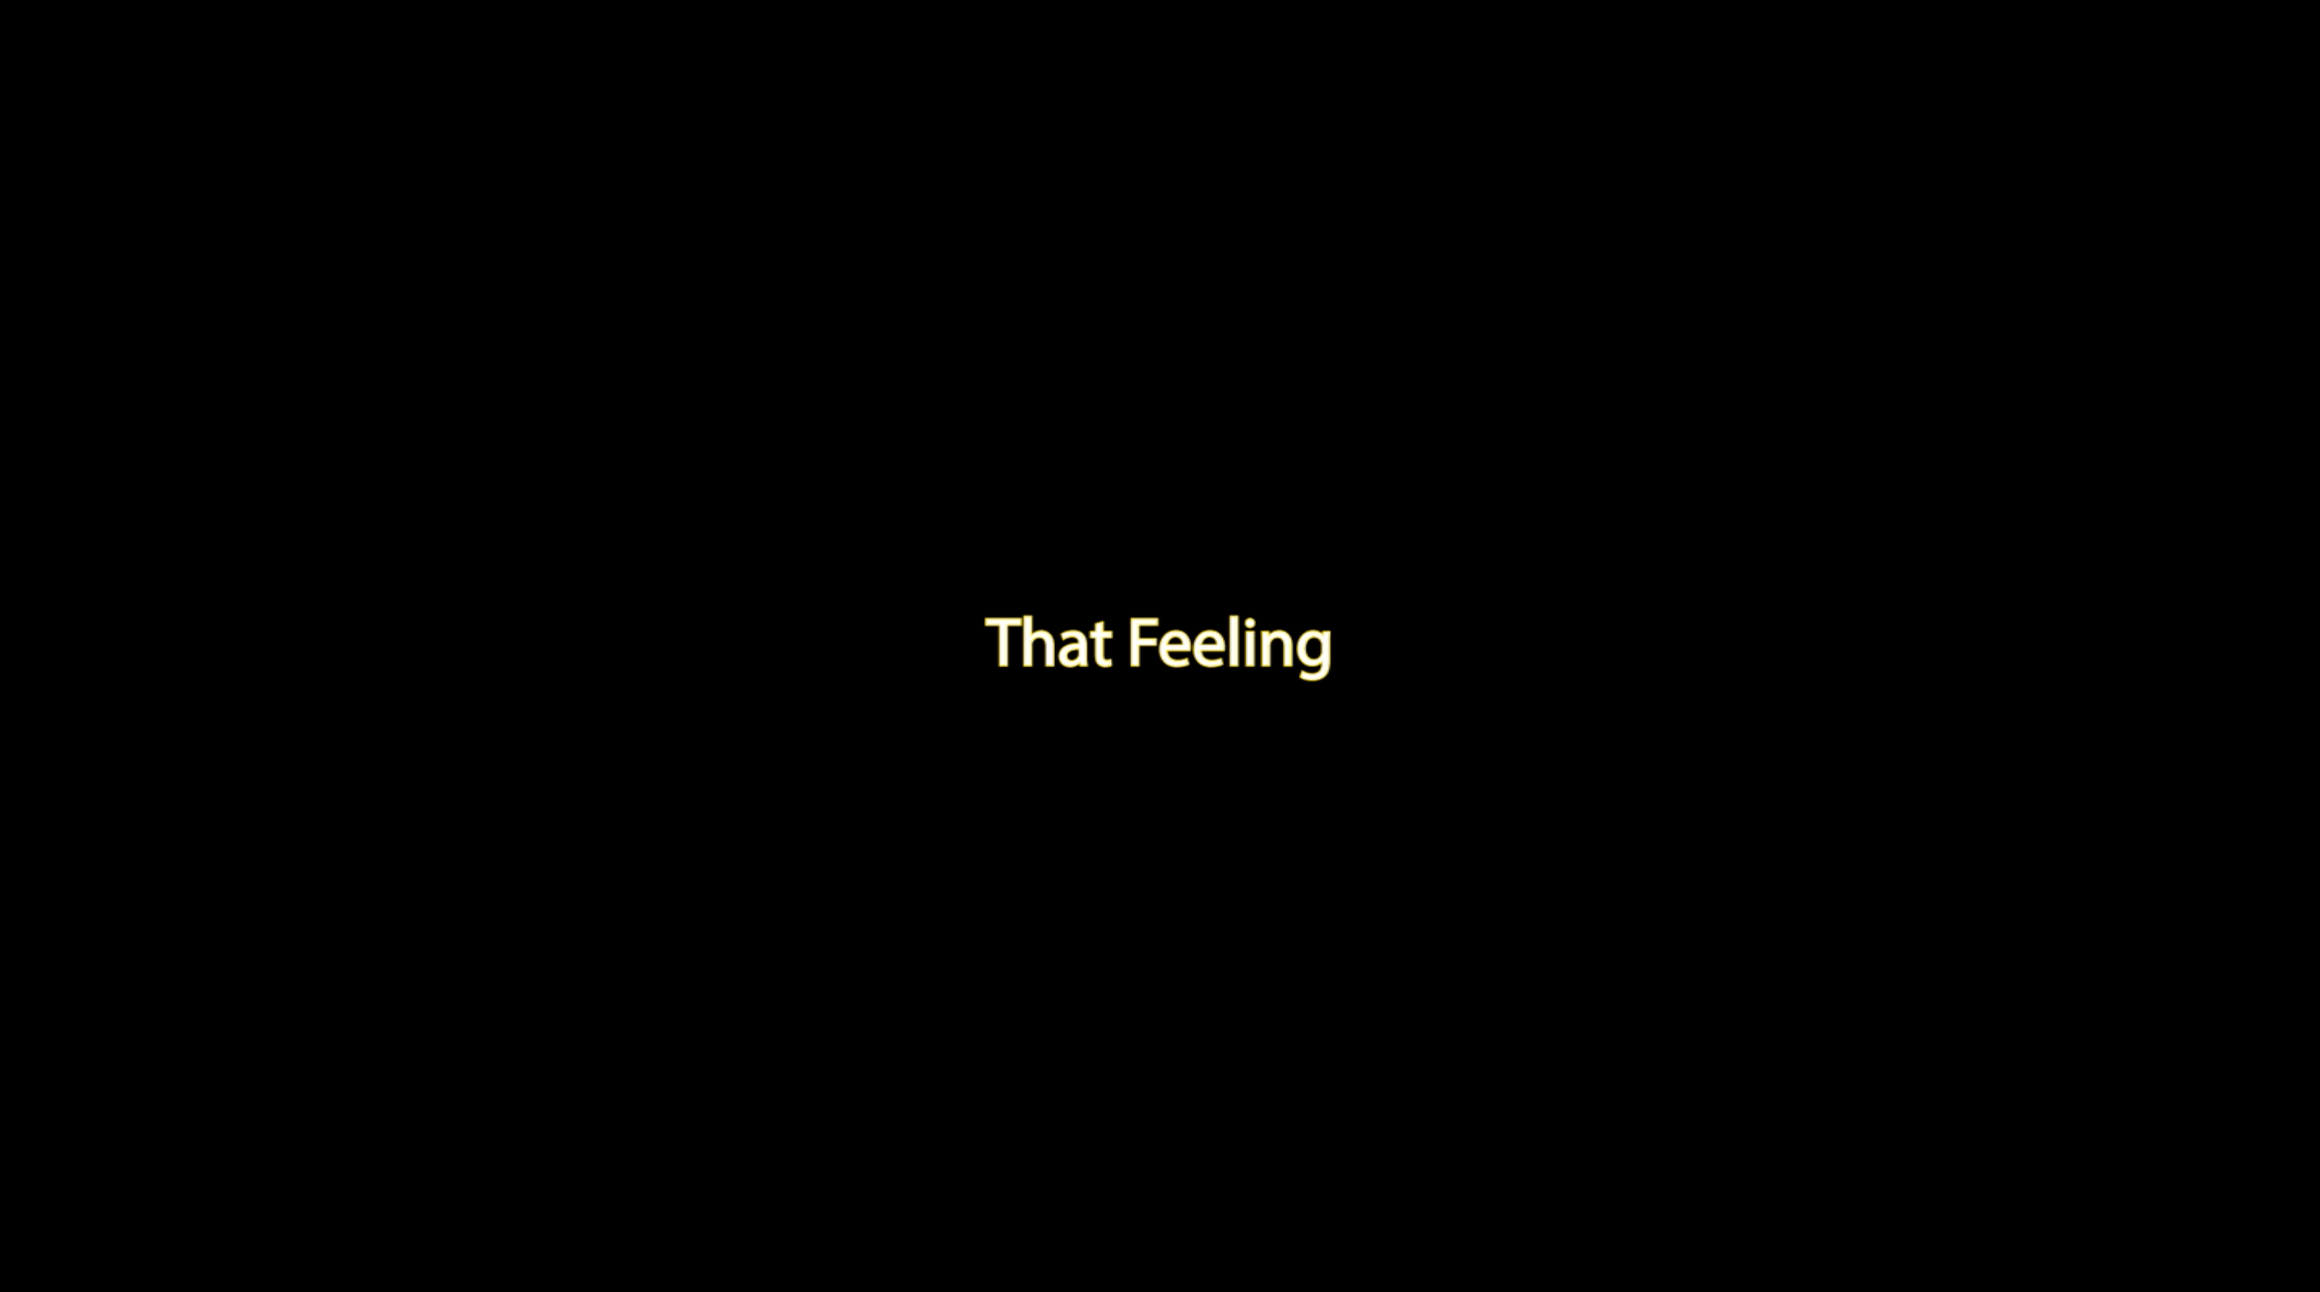 That Feeling - Marq Robinson Single